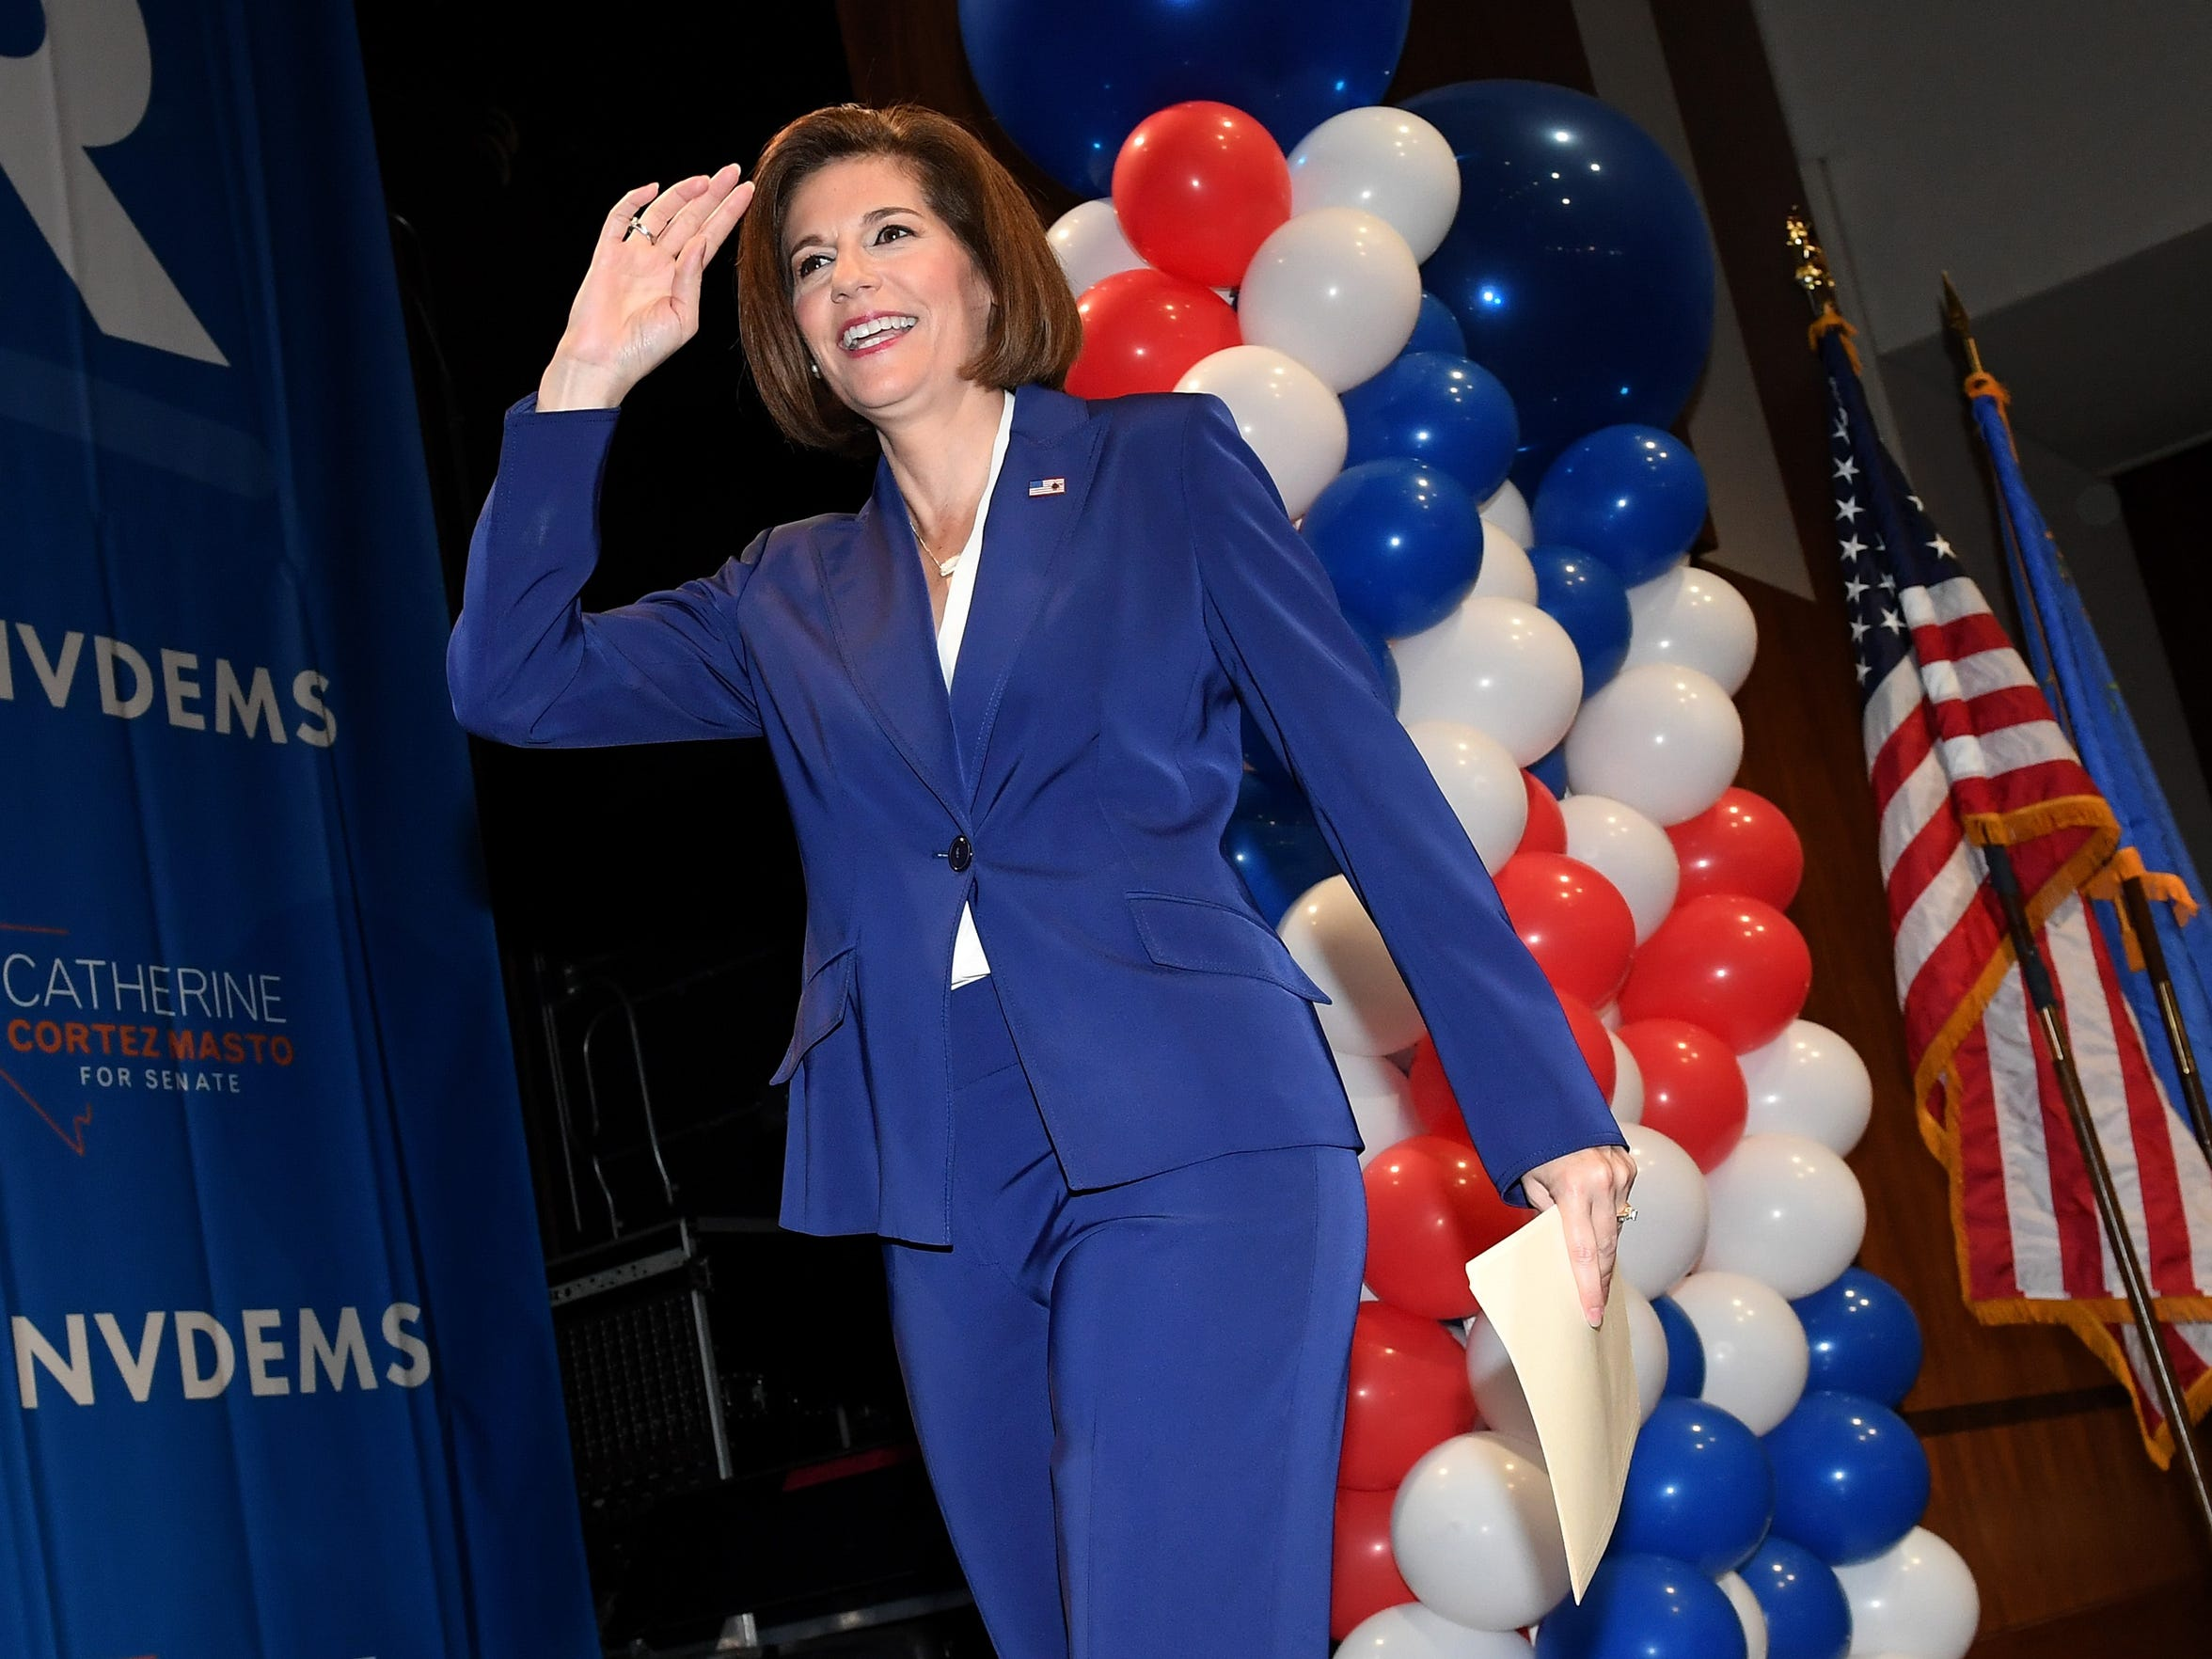 Catherine Cortez Masto walks on stage in Las Vegas on Nov. 8, 2016, after winning her Senate race.